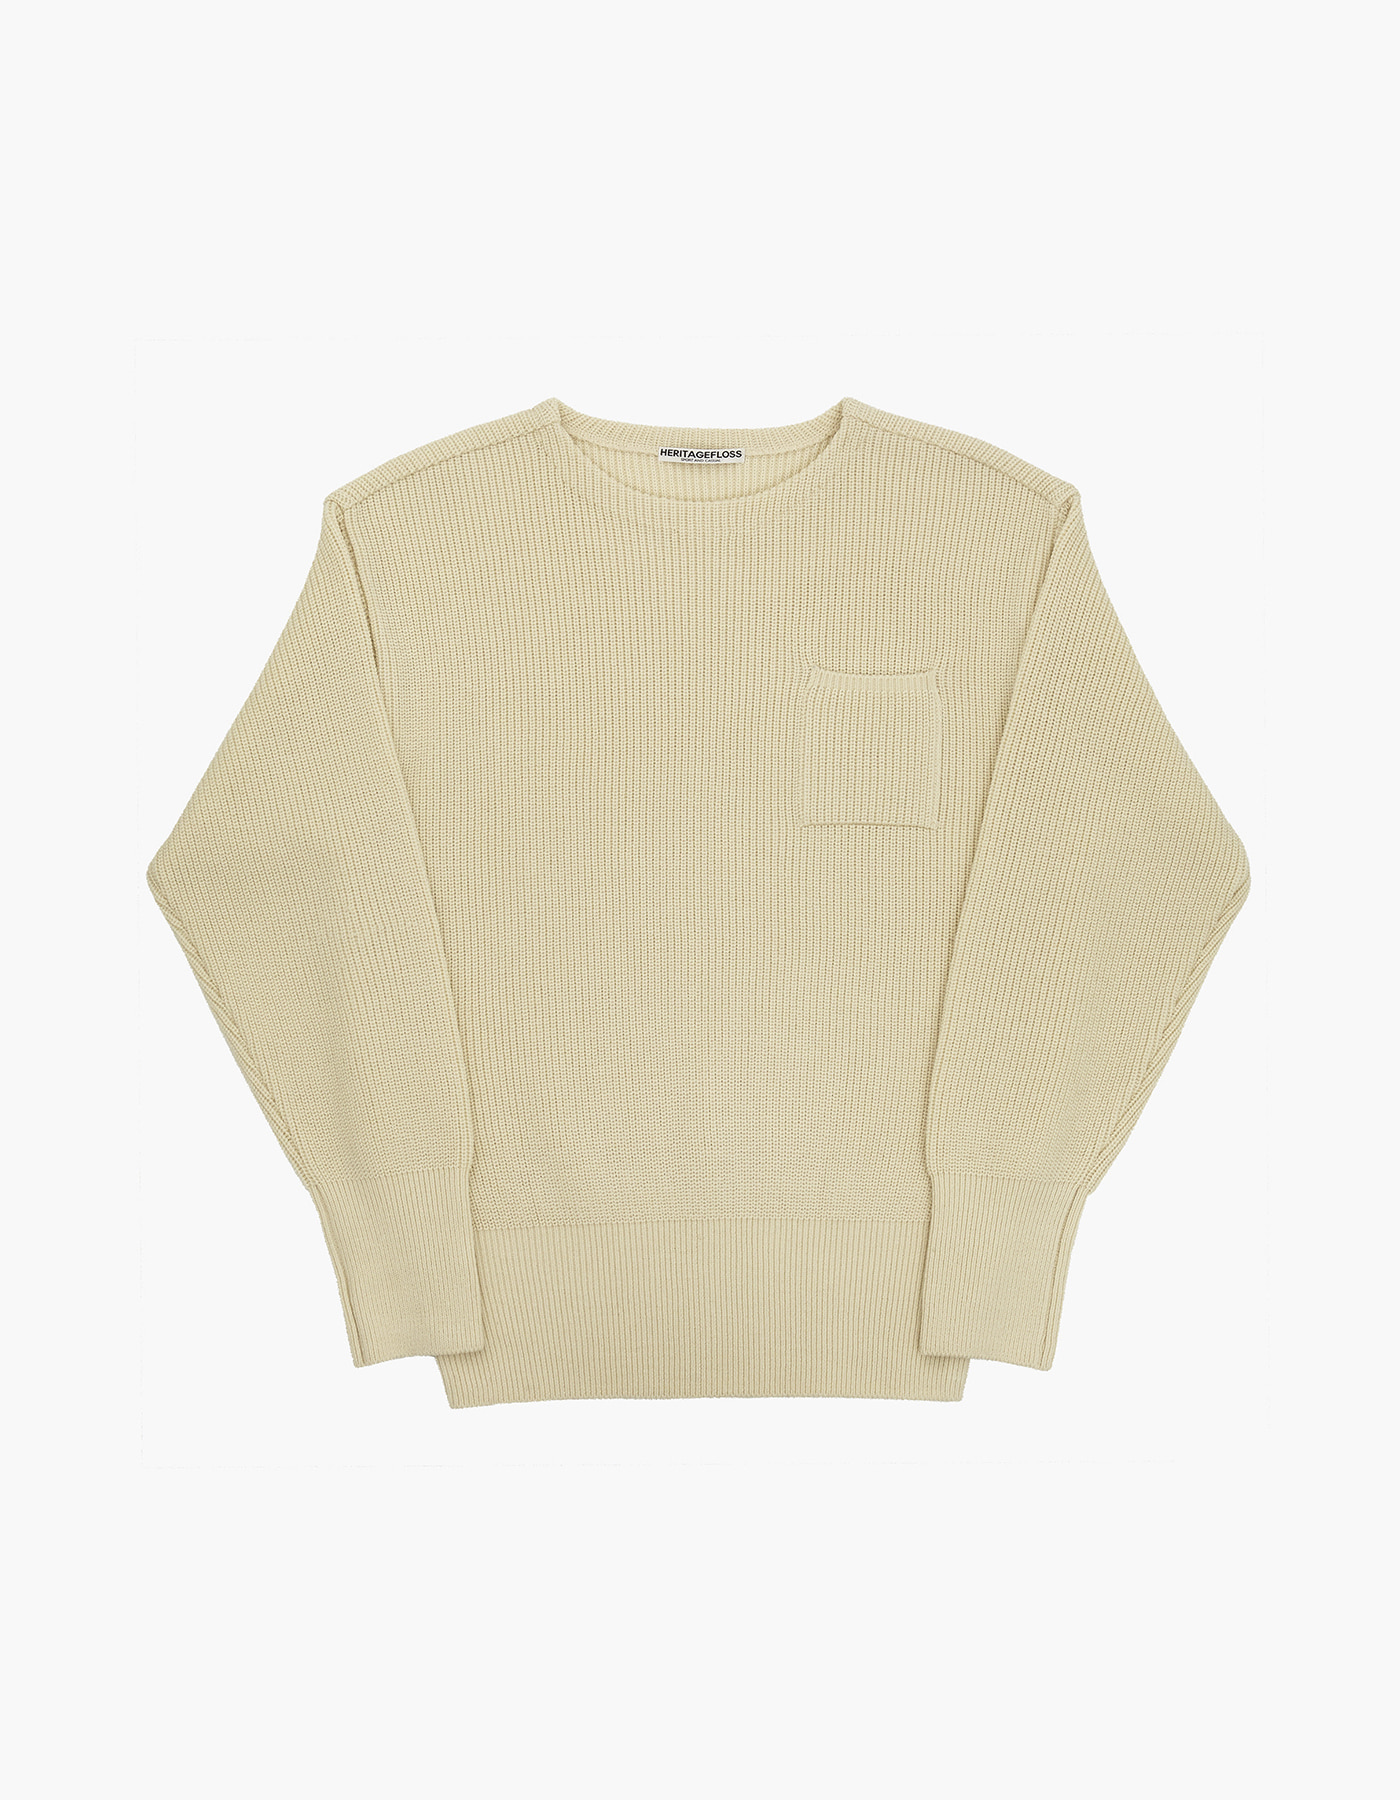 WOOL KNIT / WHITE